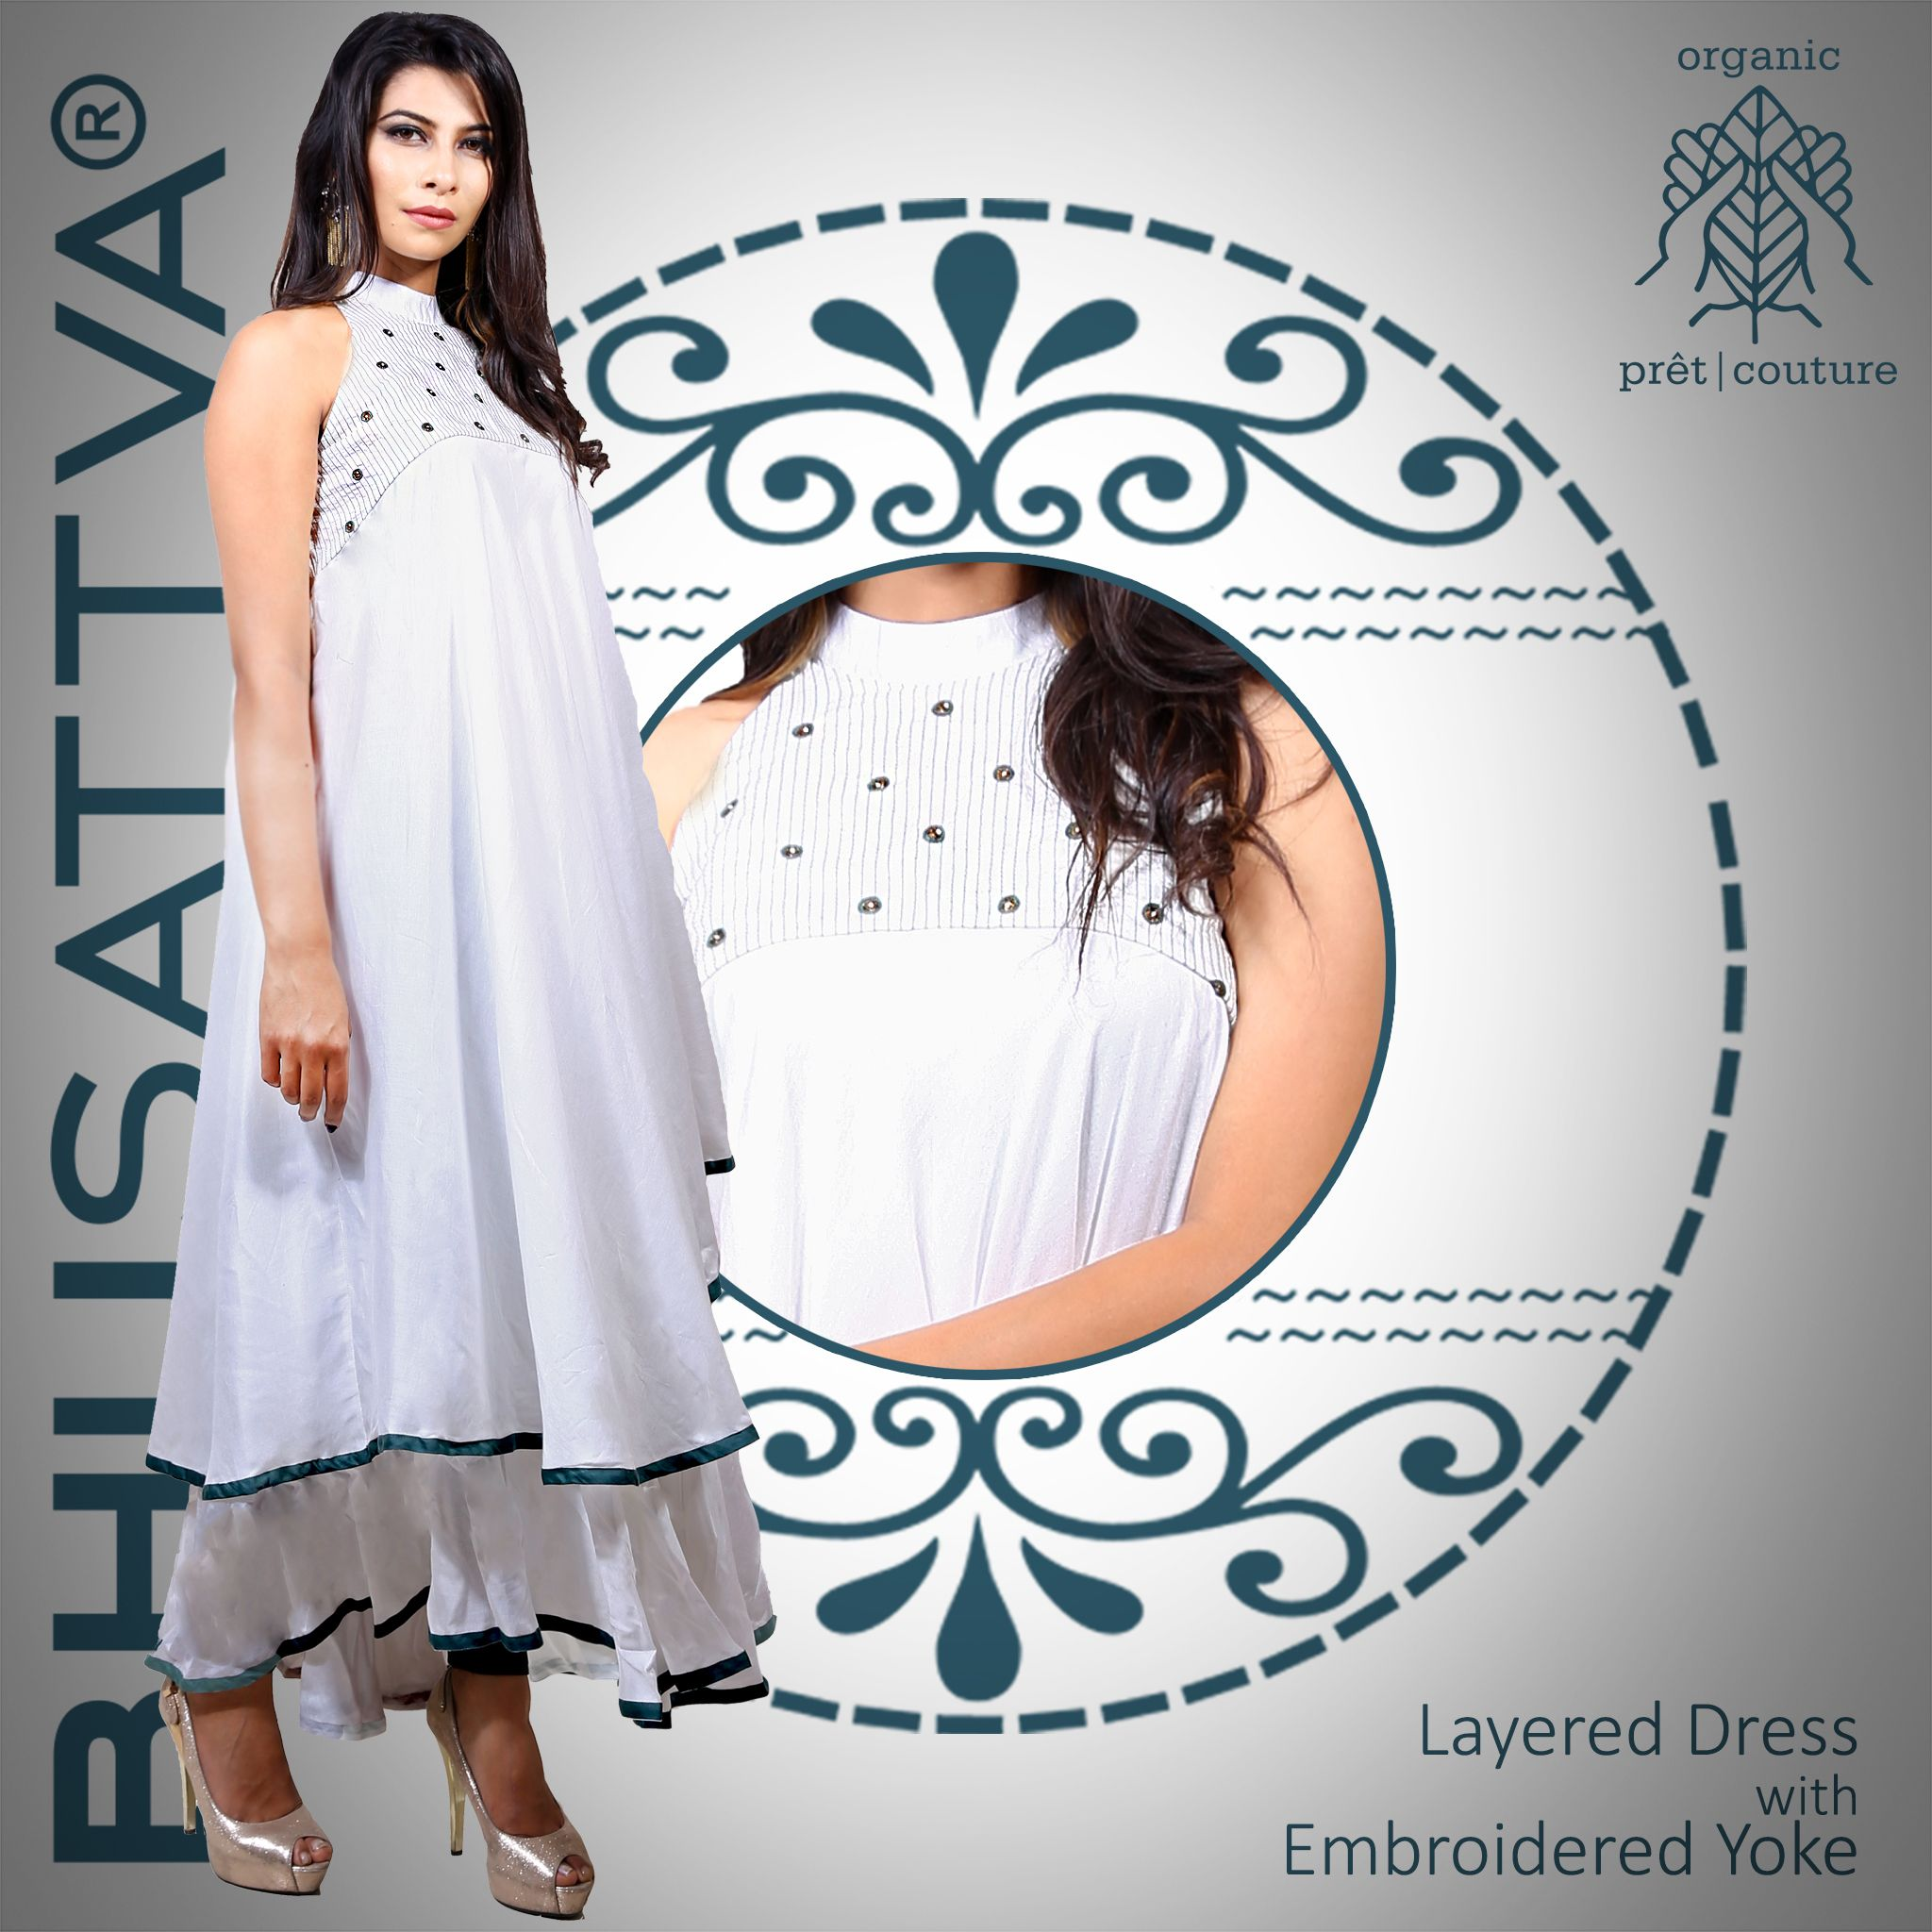 Life is in layers, live well inside them all... Embrace this elegant and classy white layered dress with embroidered yoke, from the house of #Bhusattva  #Organic #Pret #Couture #LayeredDress #White #HandEmbroidered #SkinFriendly #BreatheEasy #ReflectOrganic #RevealYourself #iWearBhusattva #BelieveWhatYouWear #TrustNature #MysticalNature #CloseToNature #OrganicIdeology #OrganicCollection #NaturalDyes #EcoFashion #OrganicFashion #SustainableFashion #GoOrganic #WearOrganic #DesignerLabel